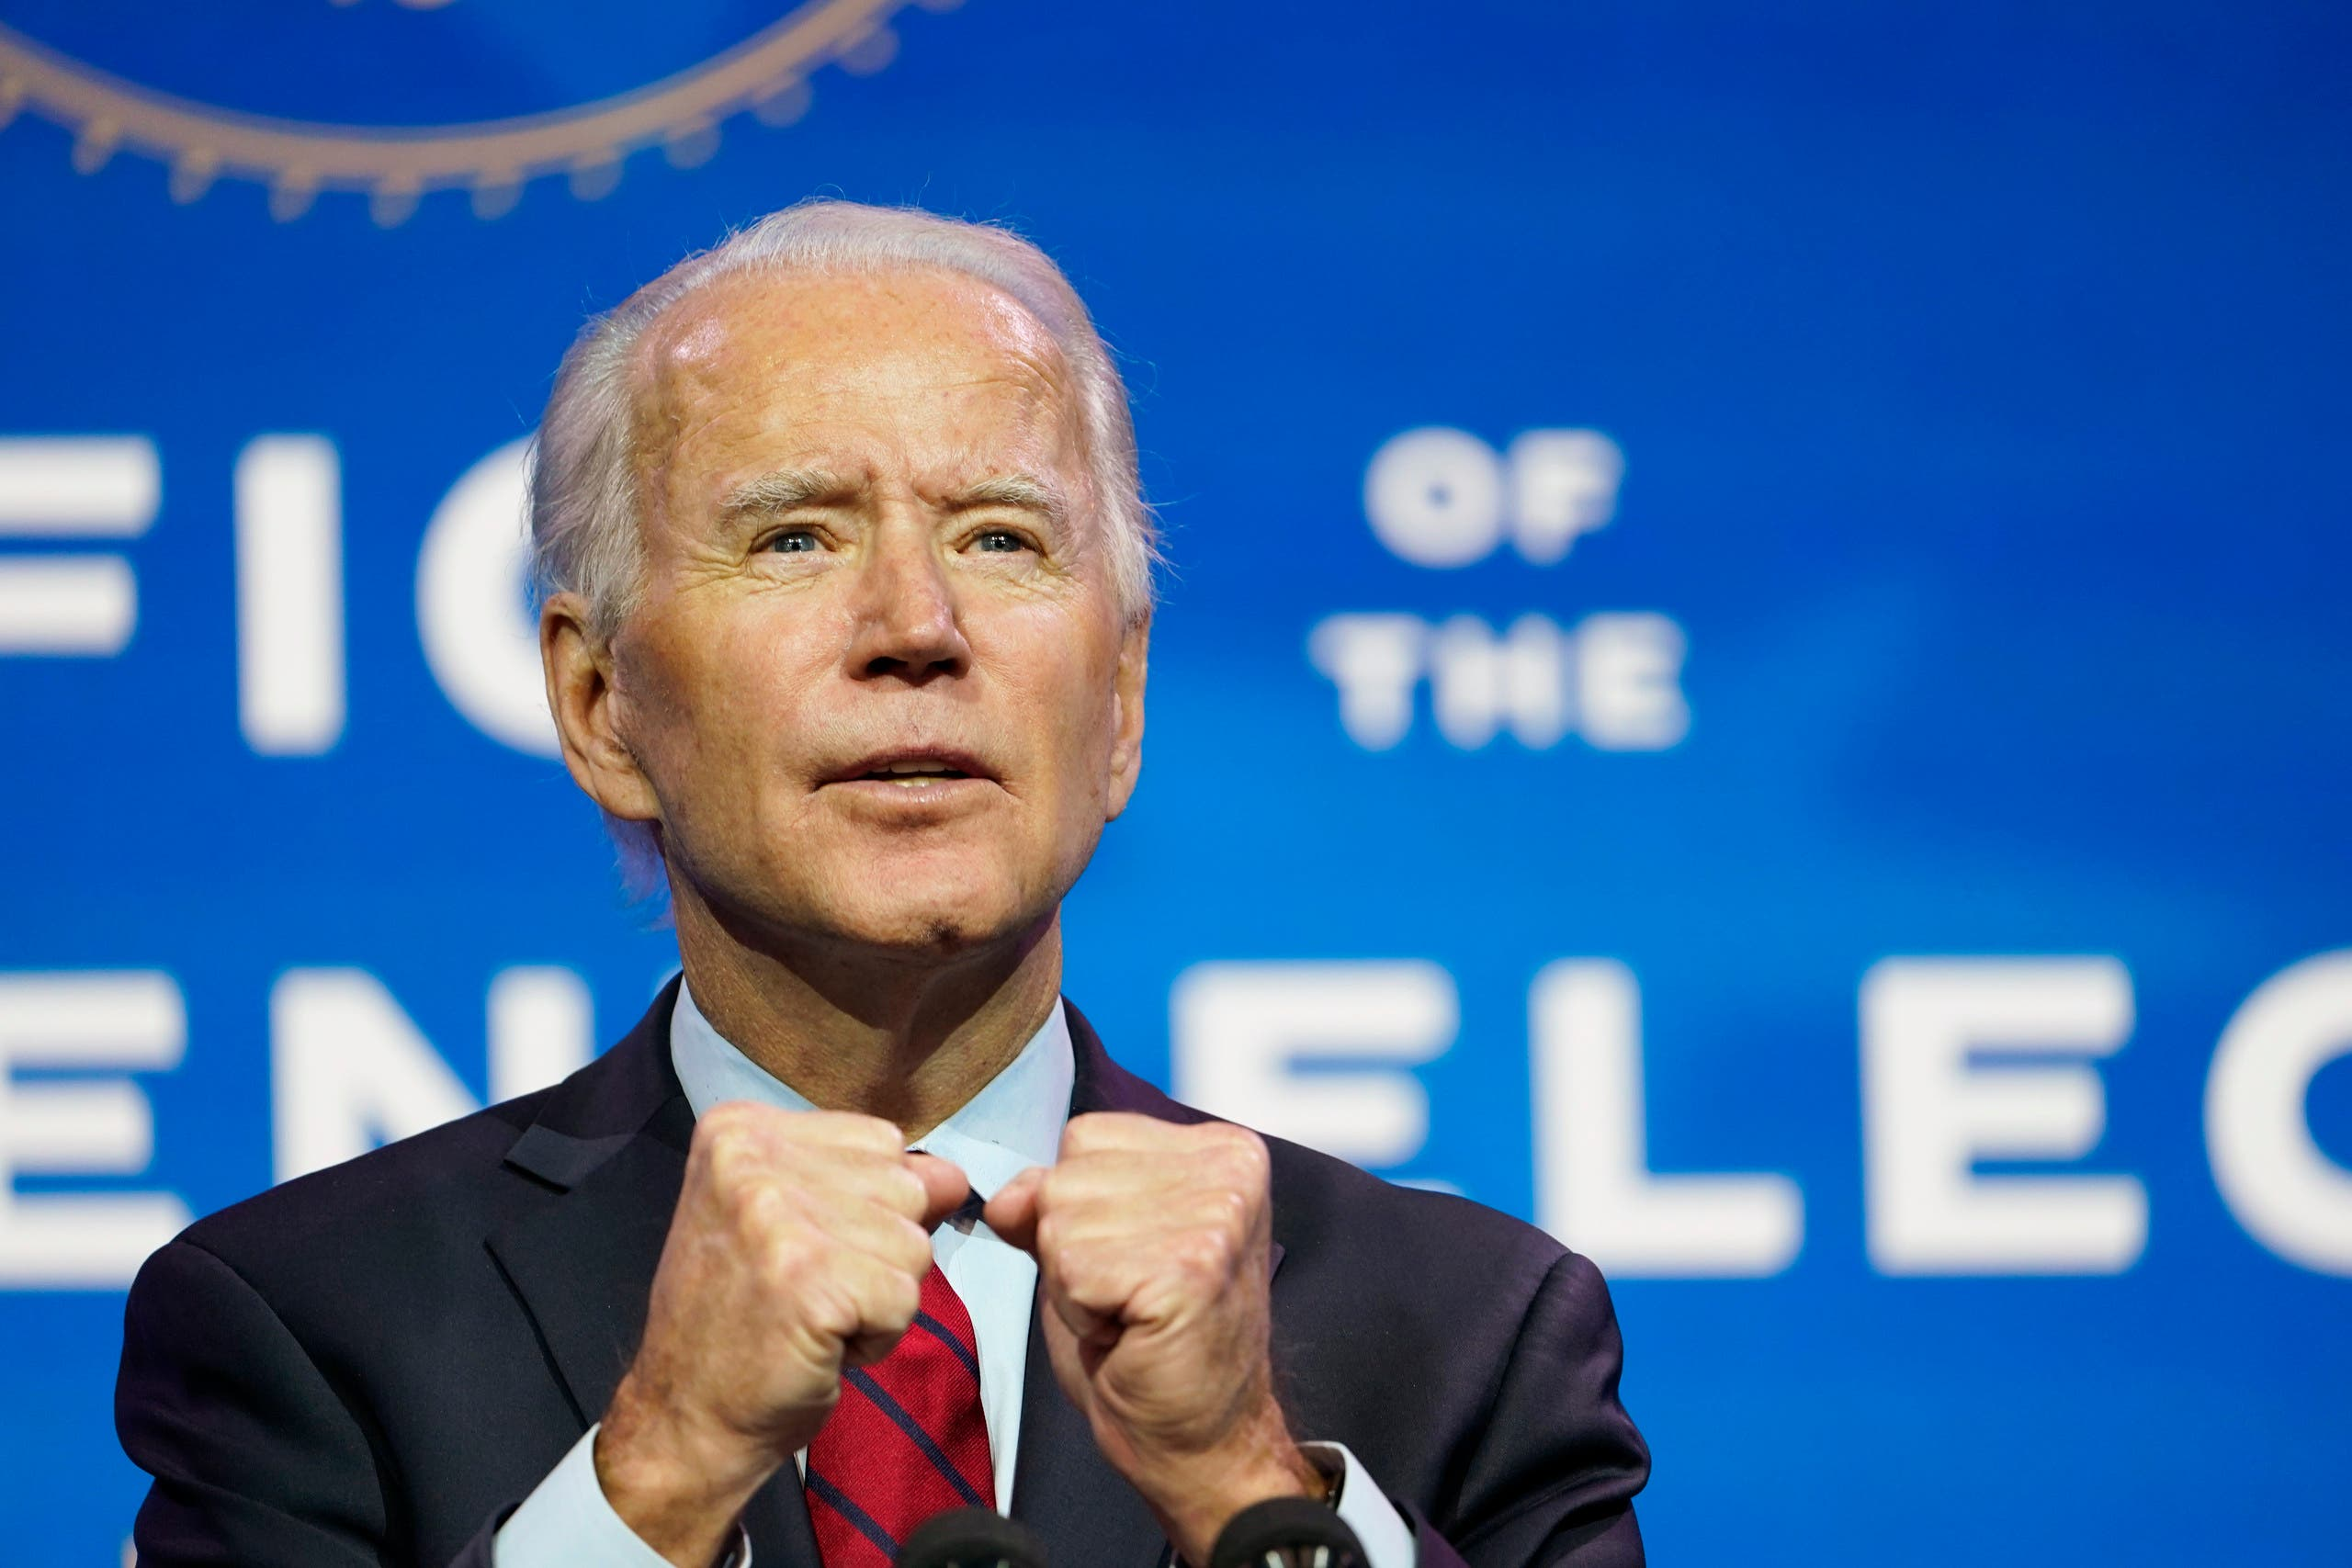 President-elect Joe Biden speaks during an event at The Queen theater in Wilmington on Dec. 8, 2020. (AP)